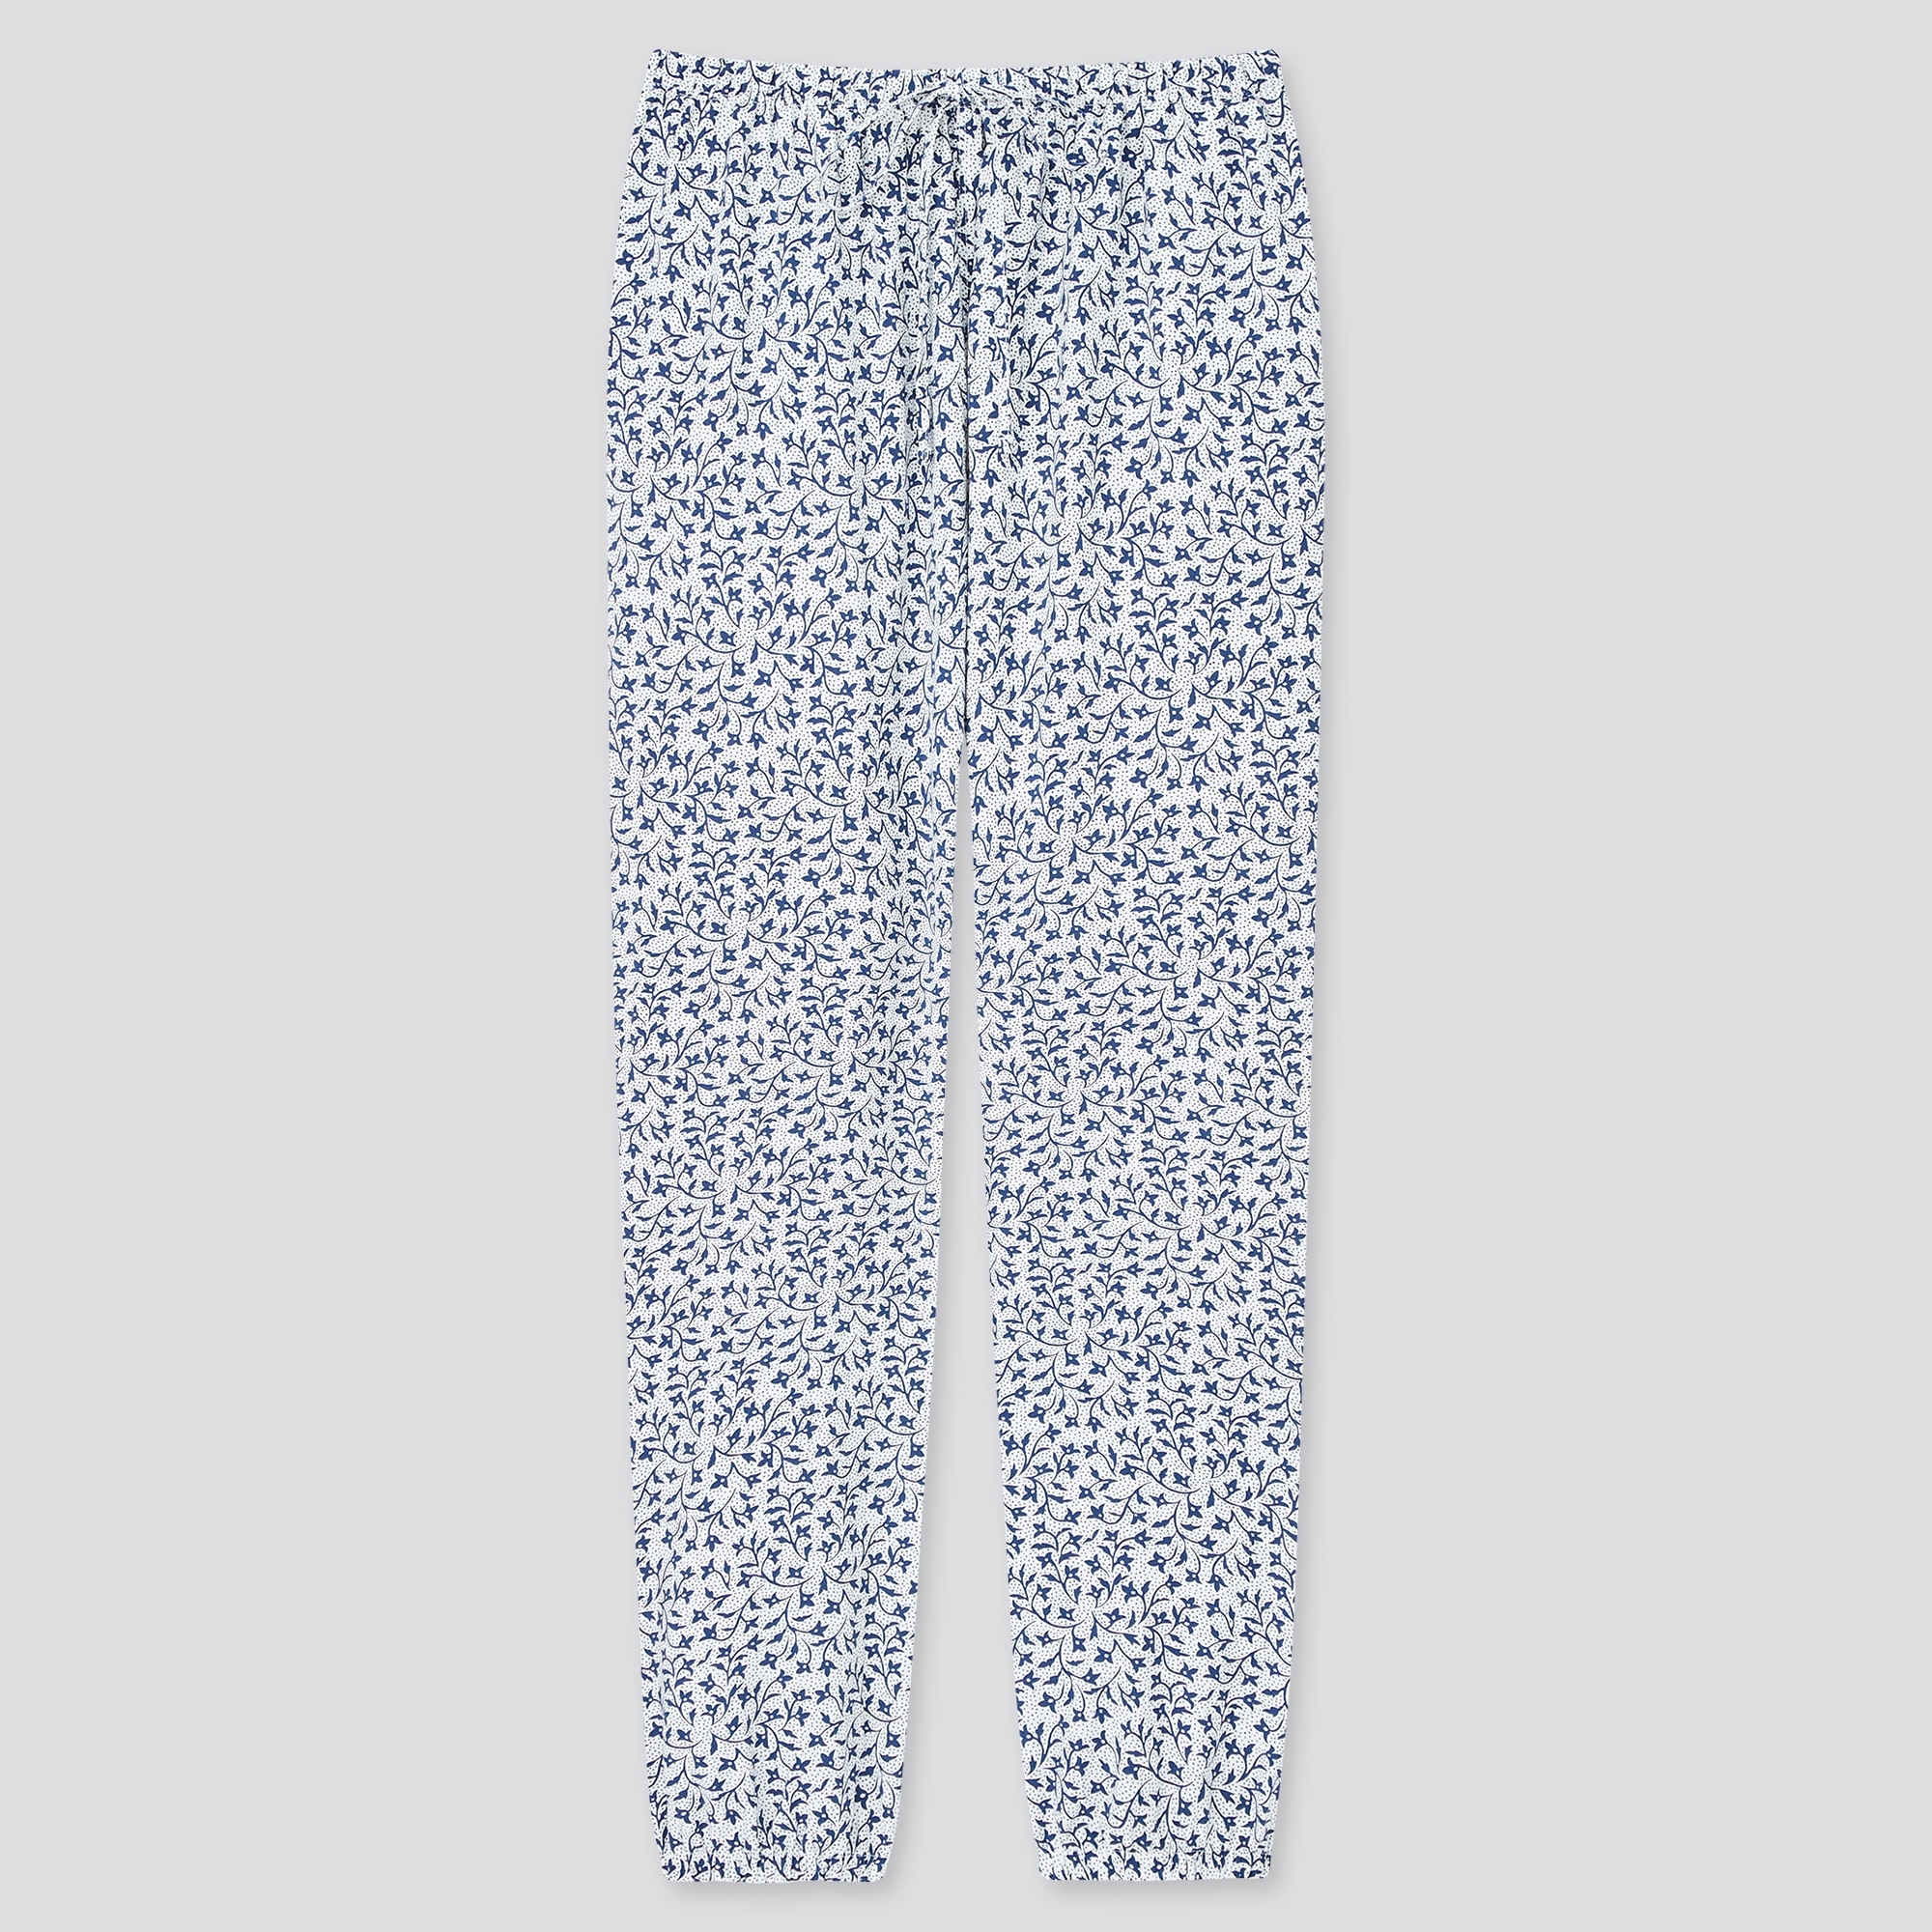 Sizes Youth S-XL Youth Sweatpants Lovely Snoopy Art Print Soft and Sports Joggers Pants Trousers Sweatpants